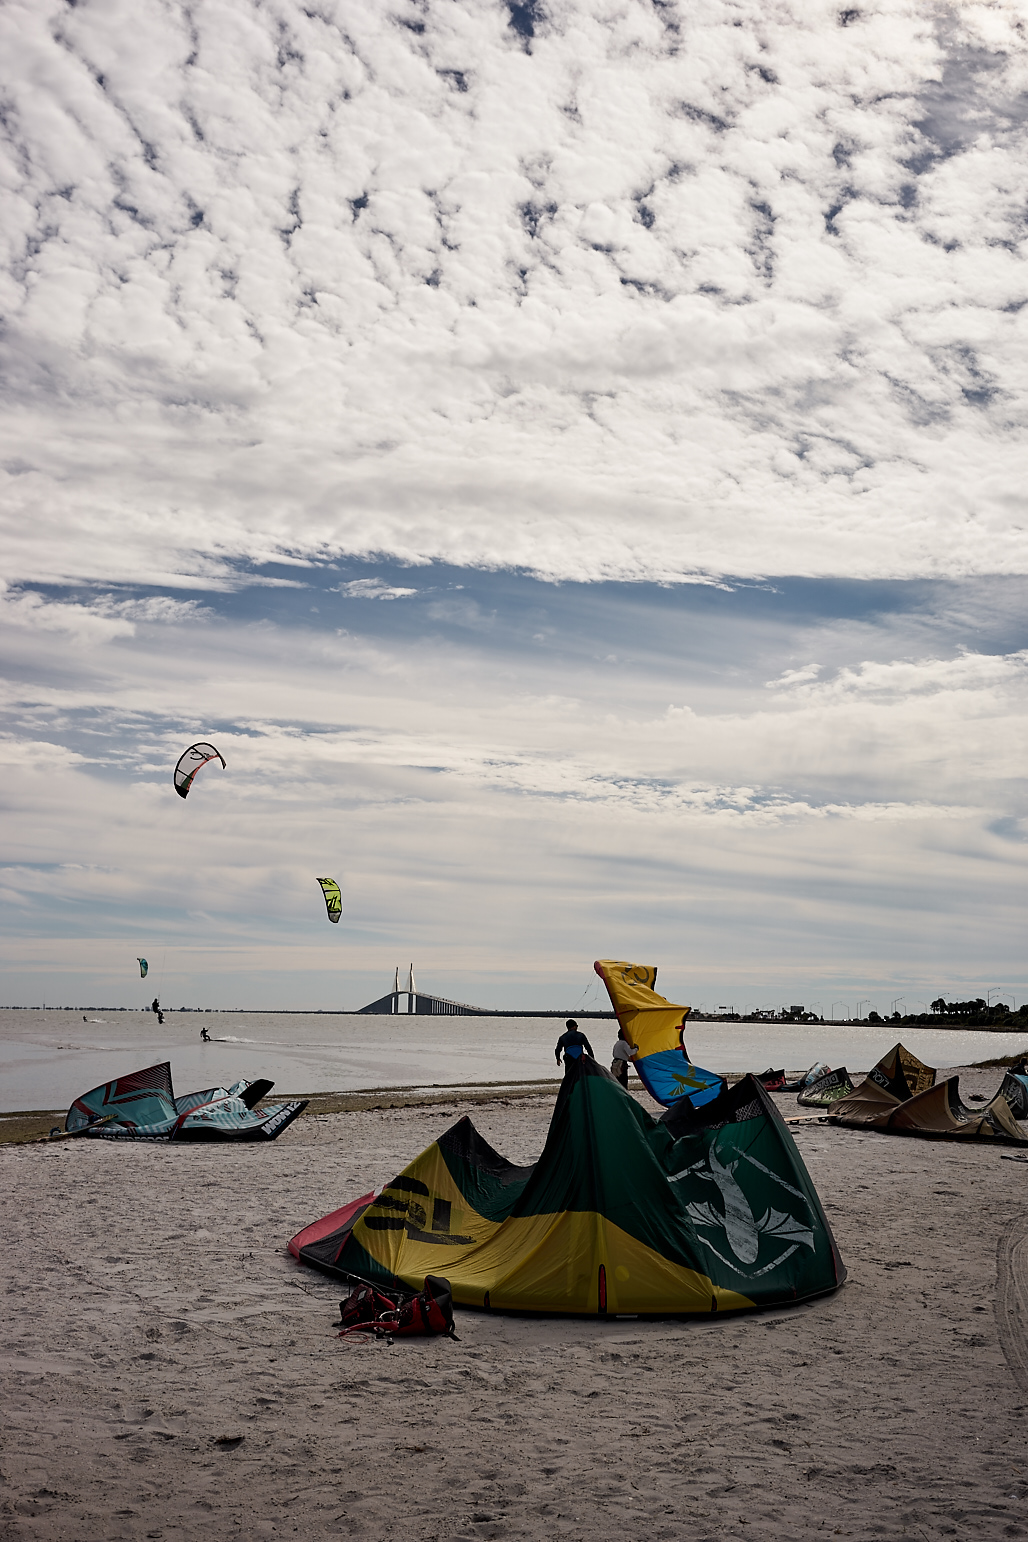 kitesurfing_kiteboarding_tampa_bay_florida_jose_romero_wordintown_DSC04042